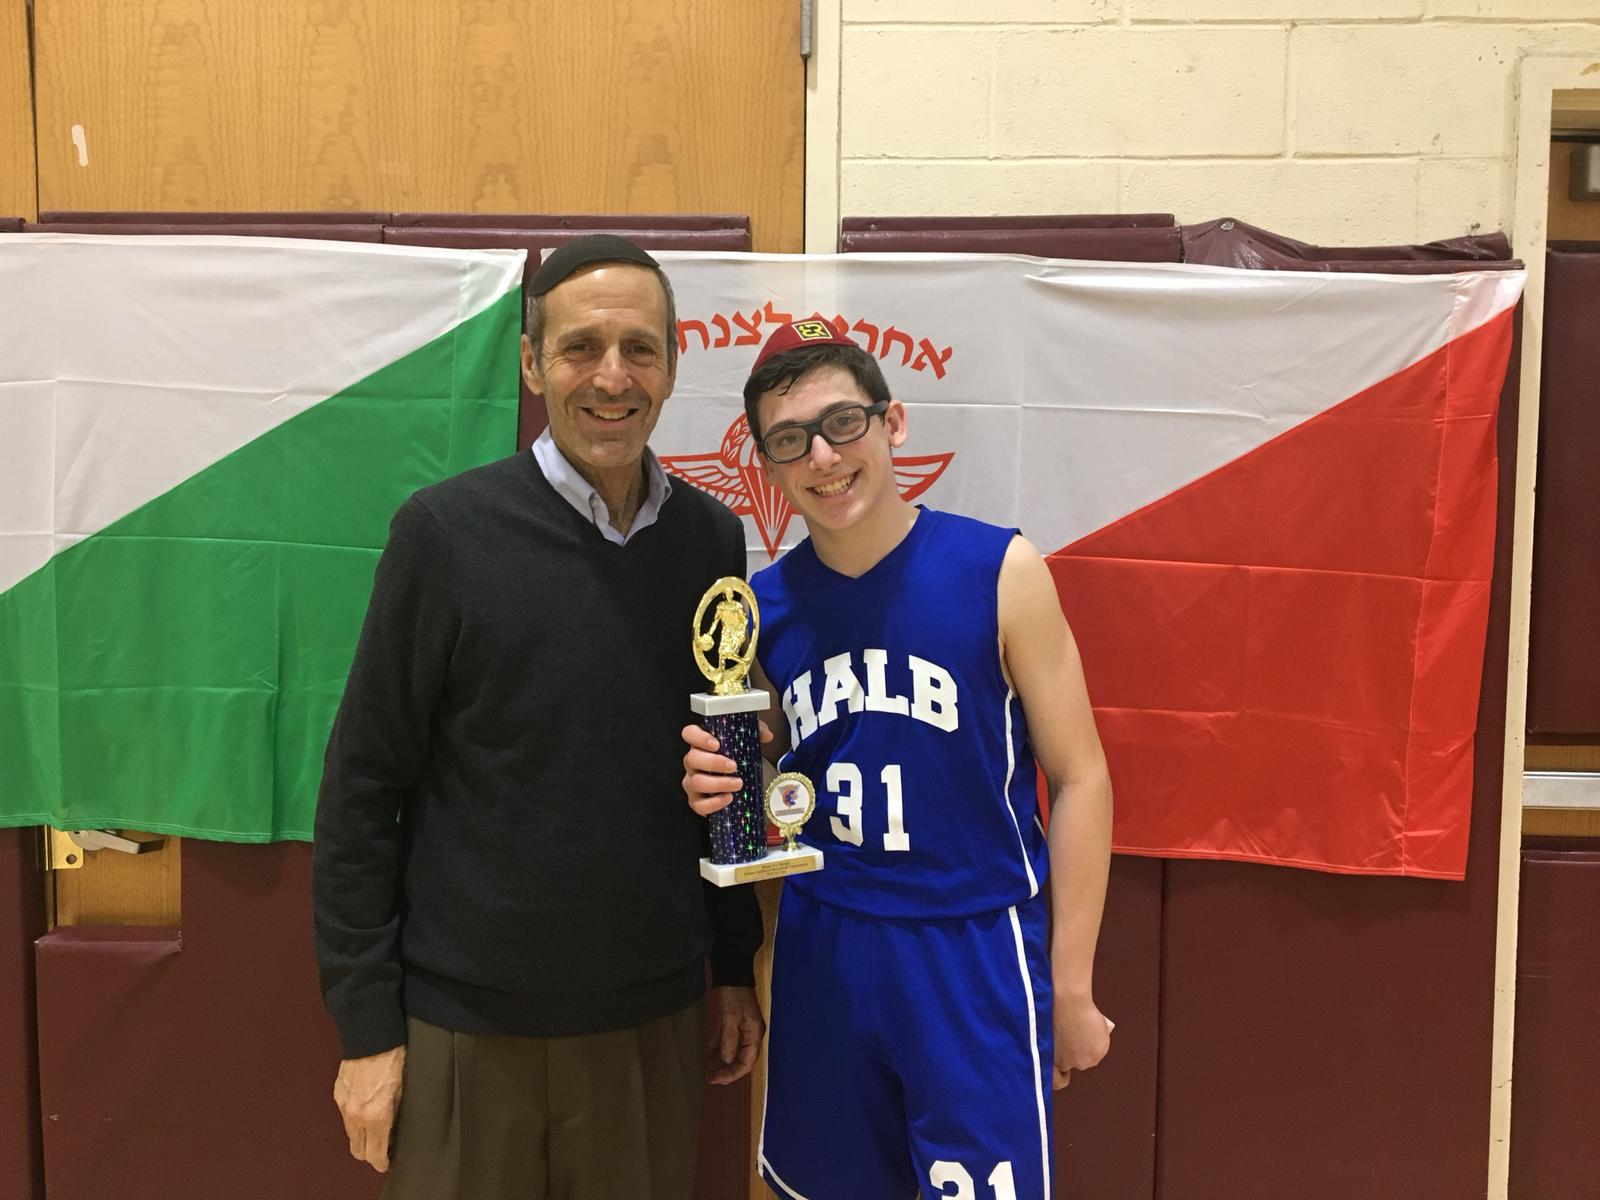 Judah Rhine with the 2018 Basketball champ from Hebrew Academy - Long Beach